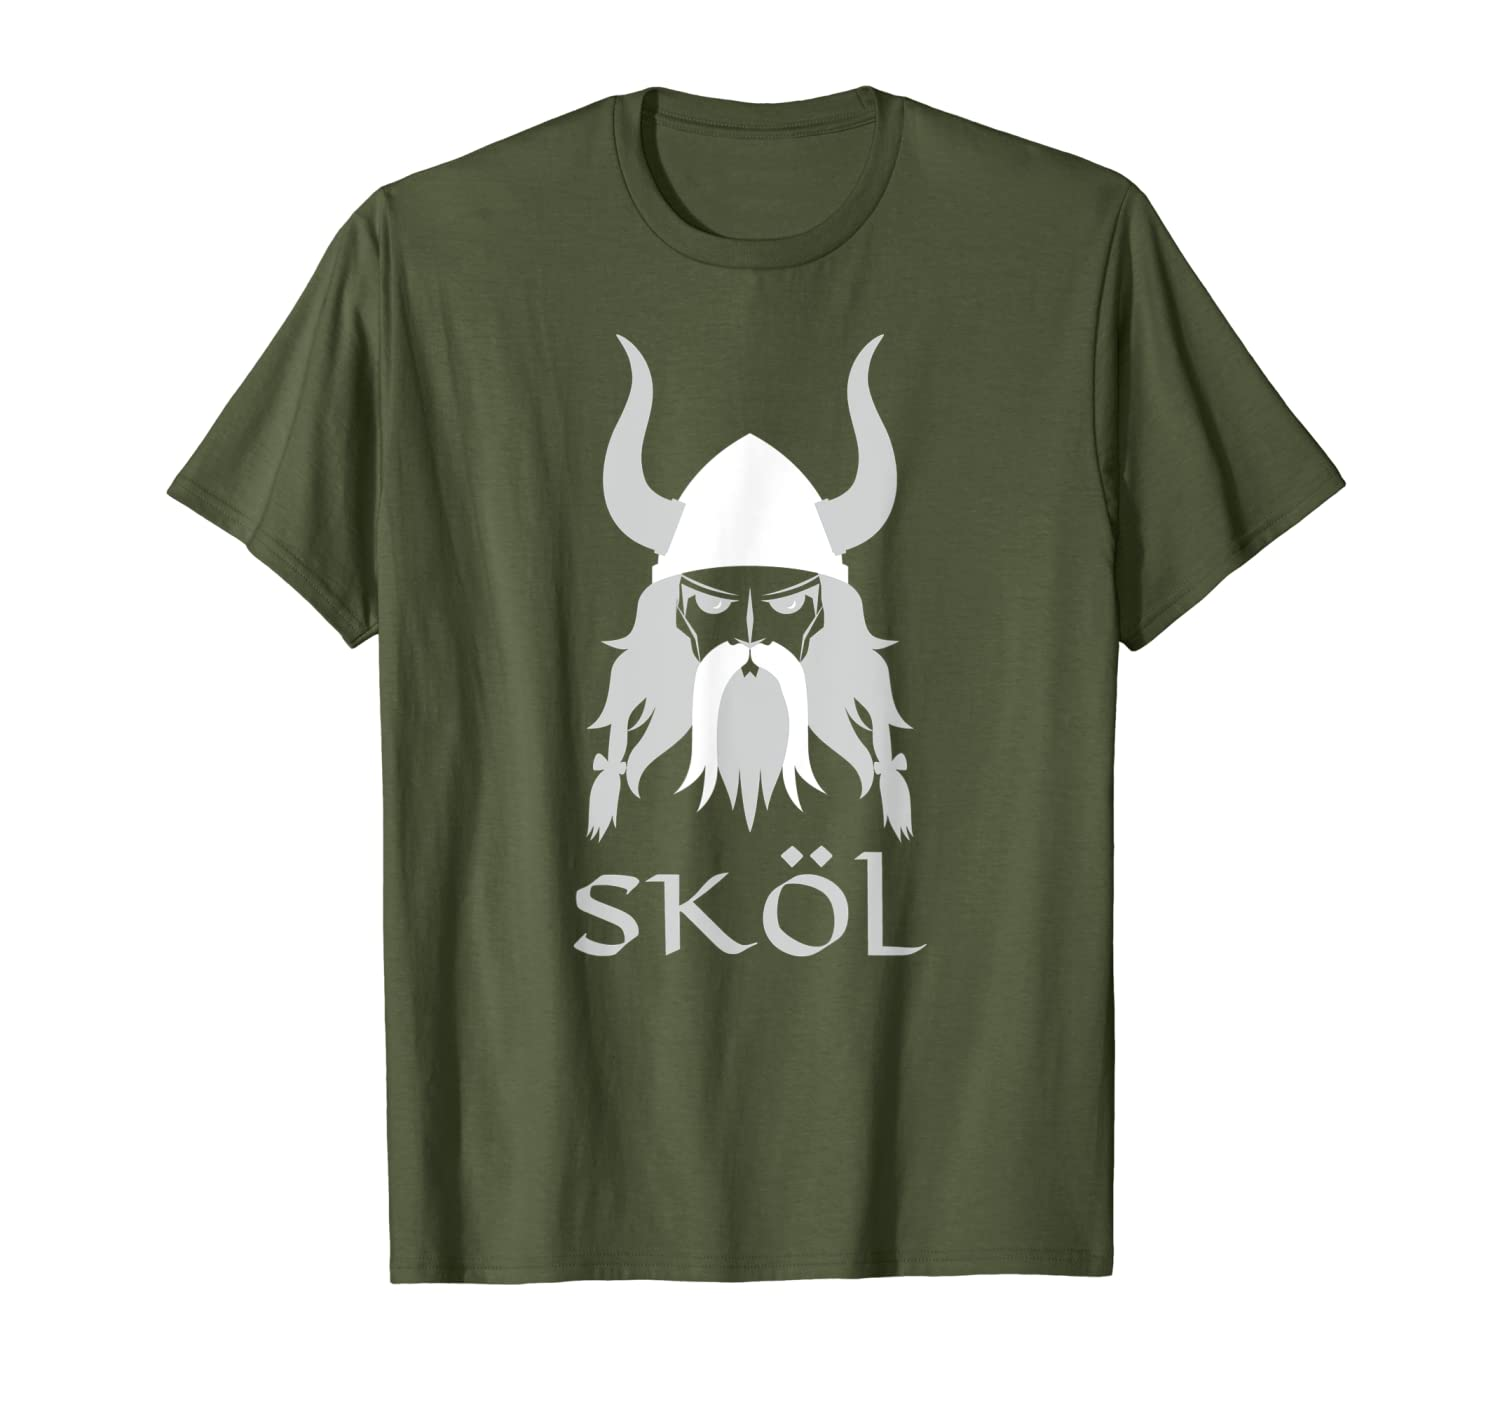 Skol Nordic Scandinavian Warrior Viking Helmet T-Shirt-TH